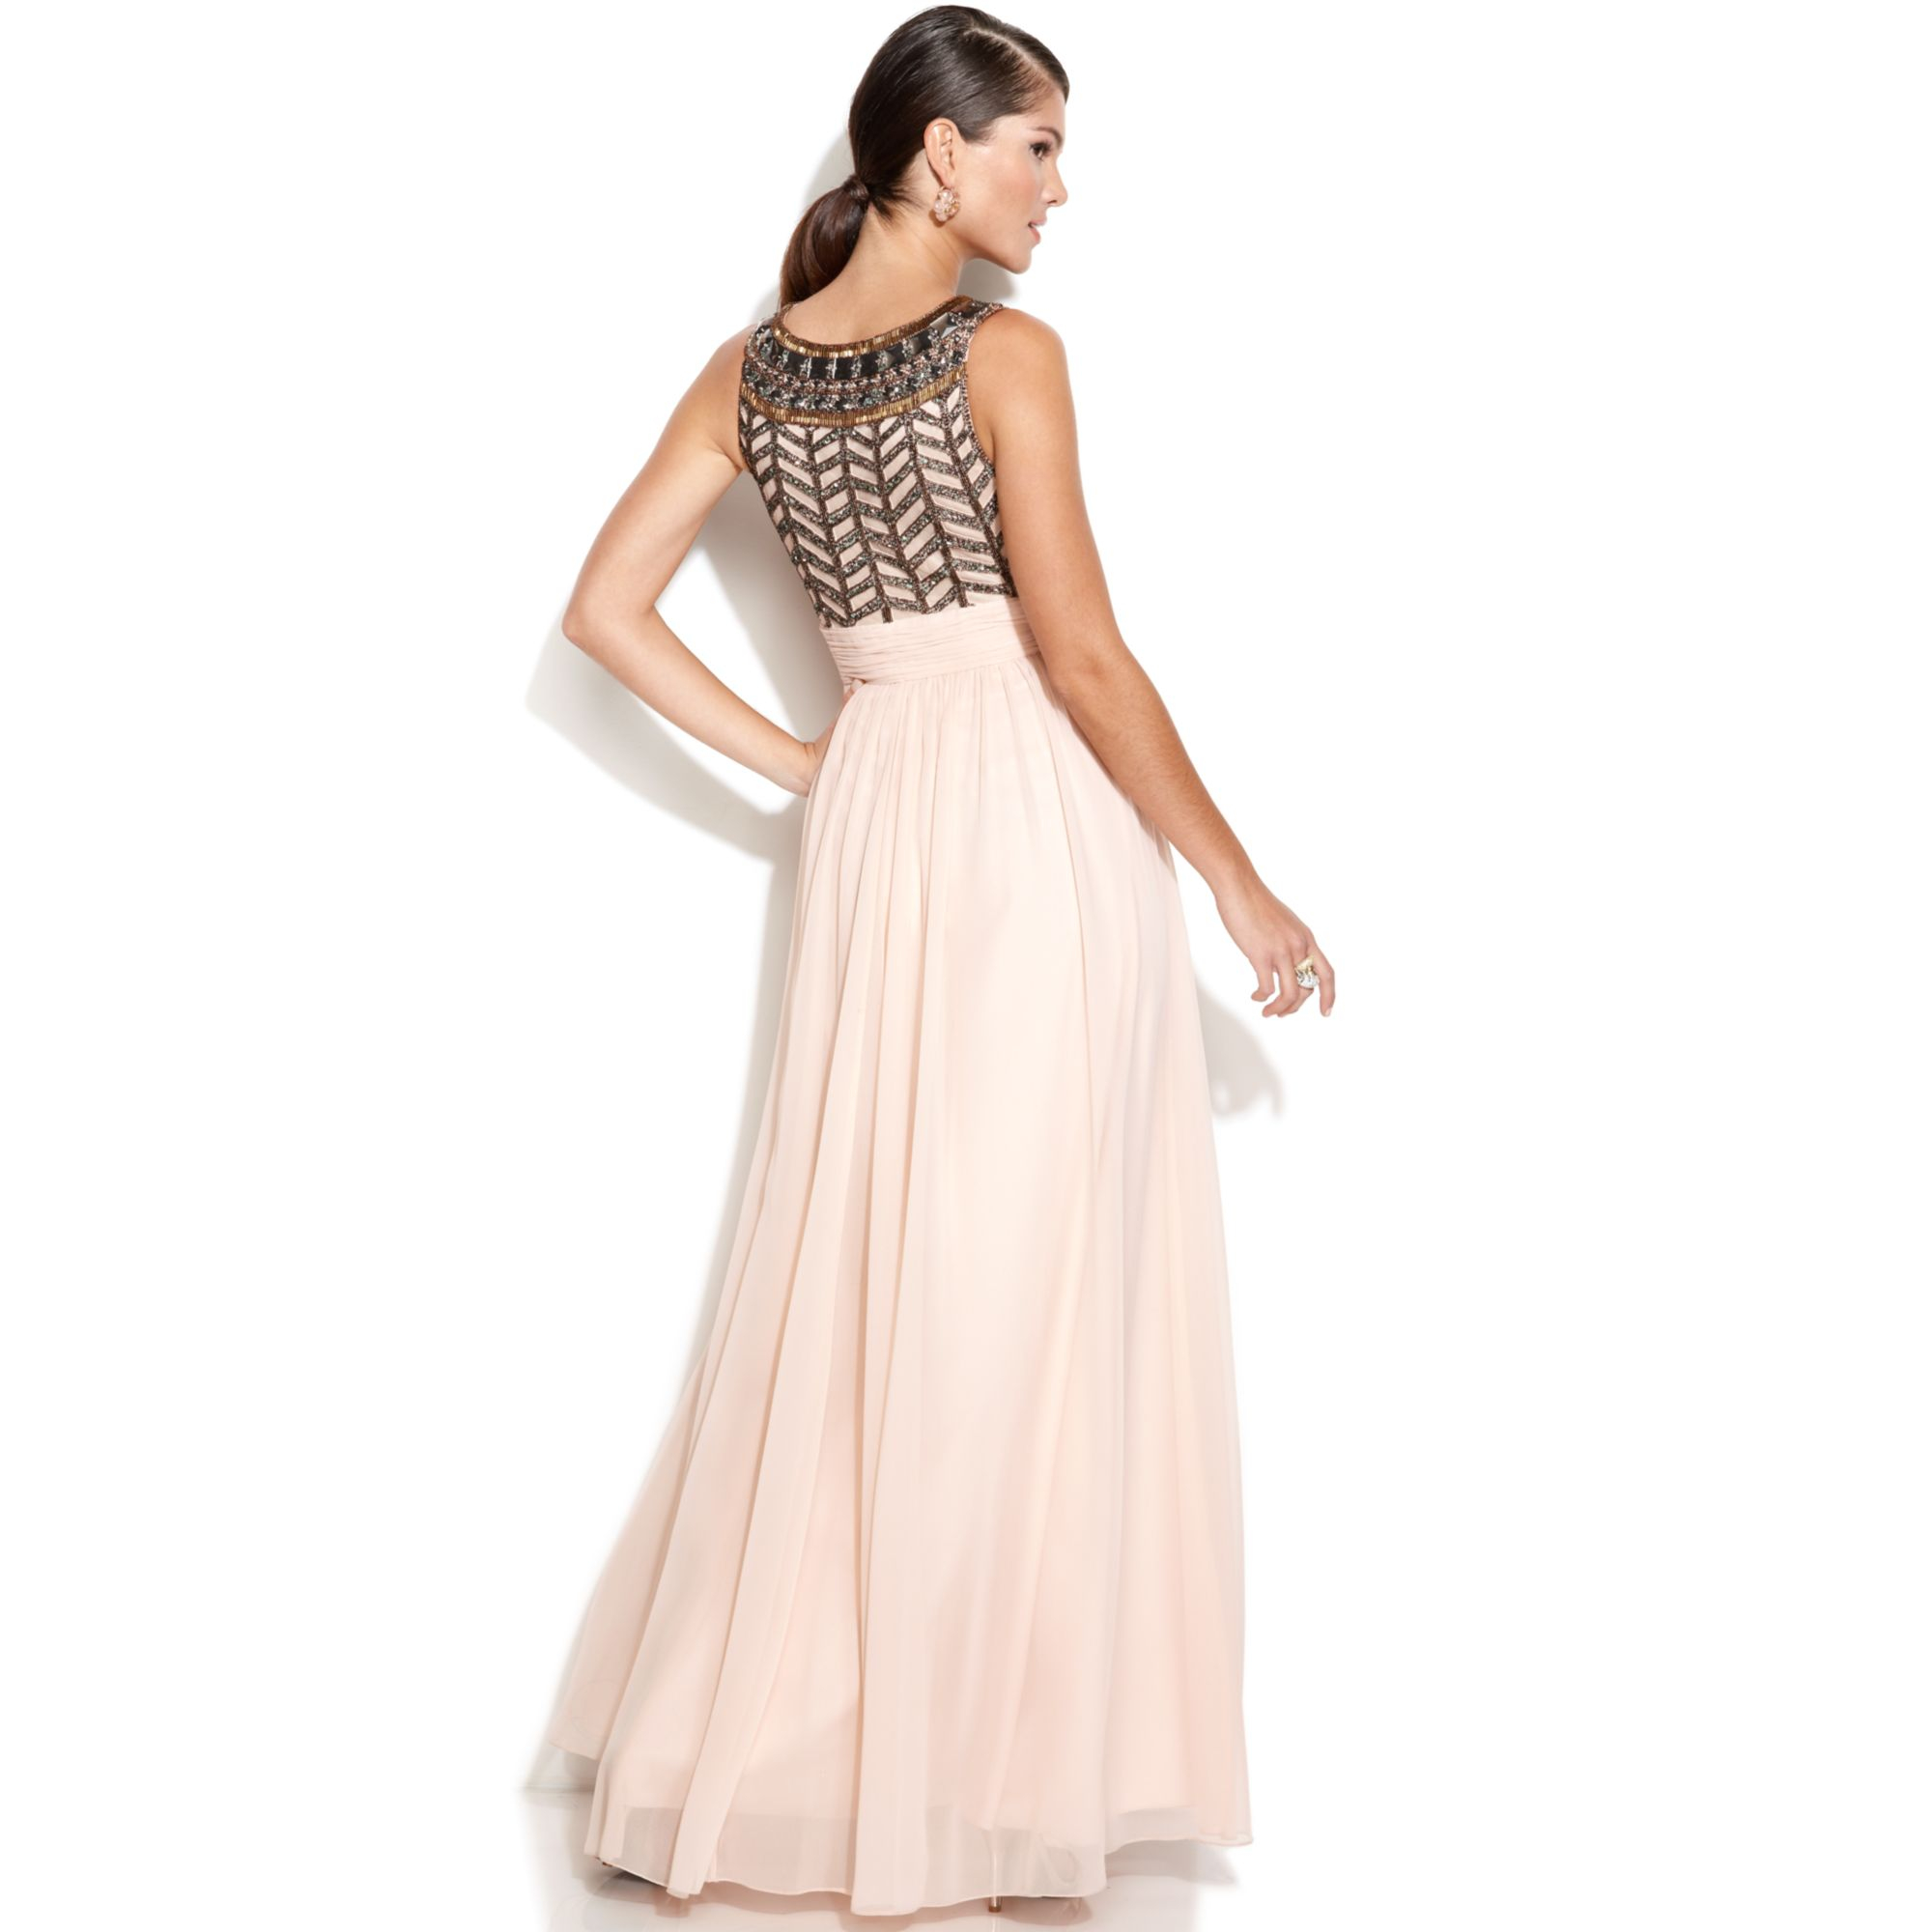 8c2f8d45c0 Lyst - JS Collections Sleeveless Beaded Empirewaist Gown in Pink